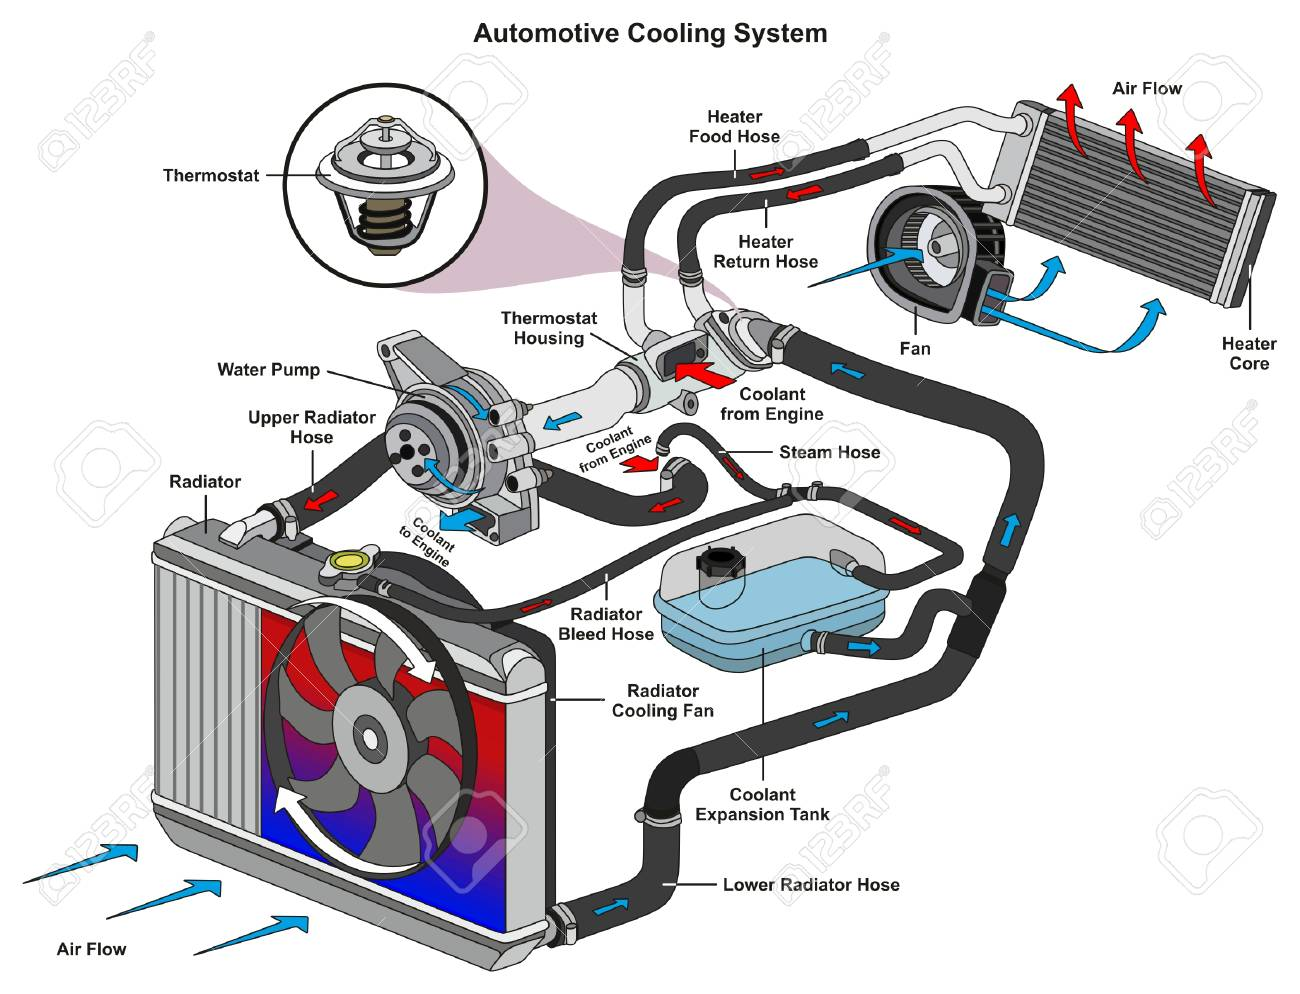 Automotive Cooling System Infographic Diagram Showing Process Car Wiring Automobiles And For All Parts Included Radiator Hoses Coolant Flow Thermostat